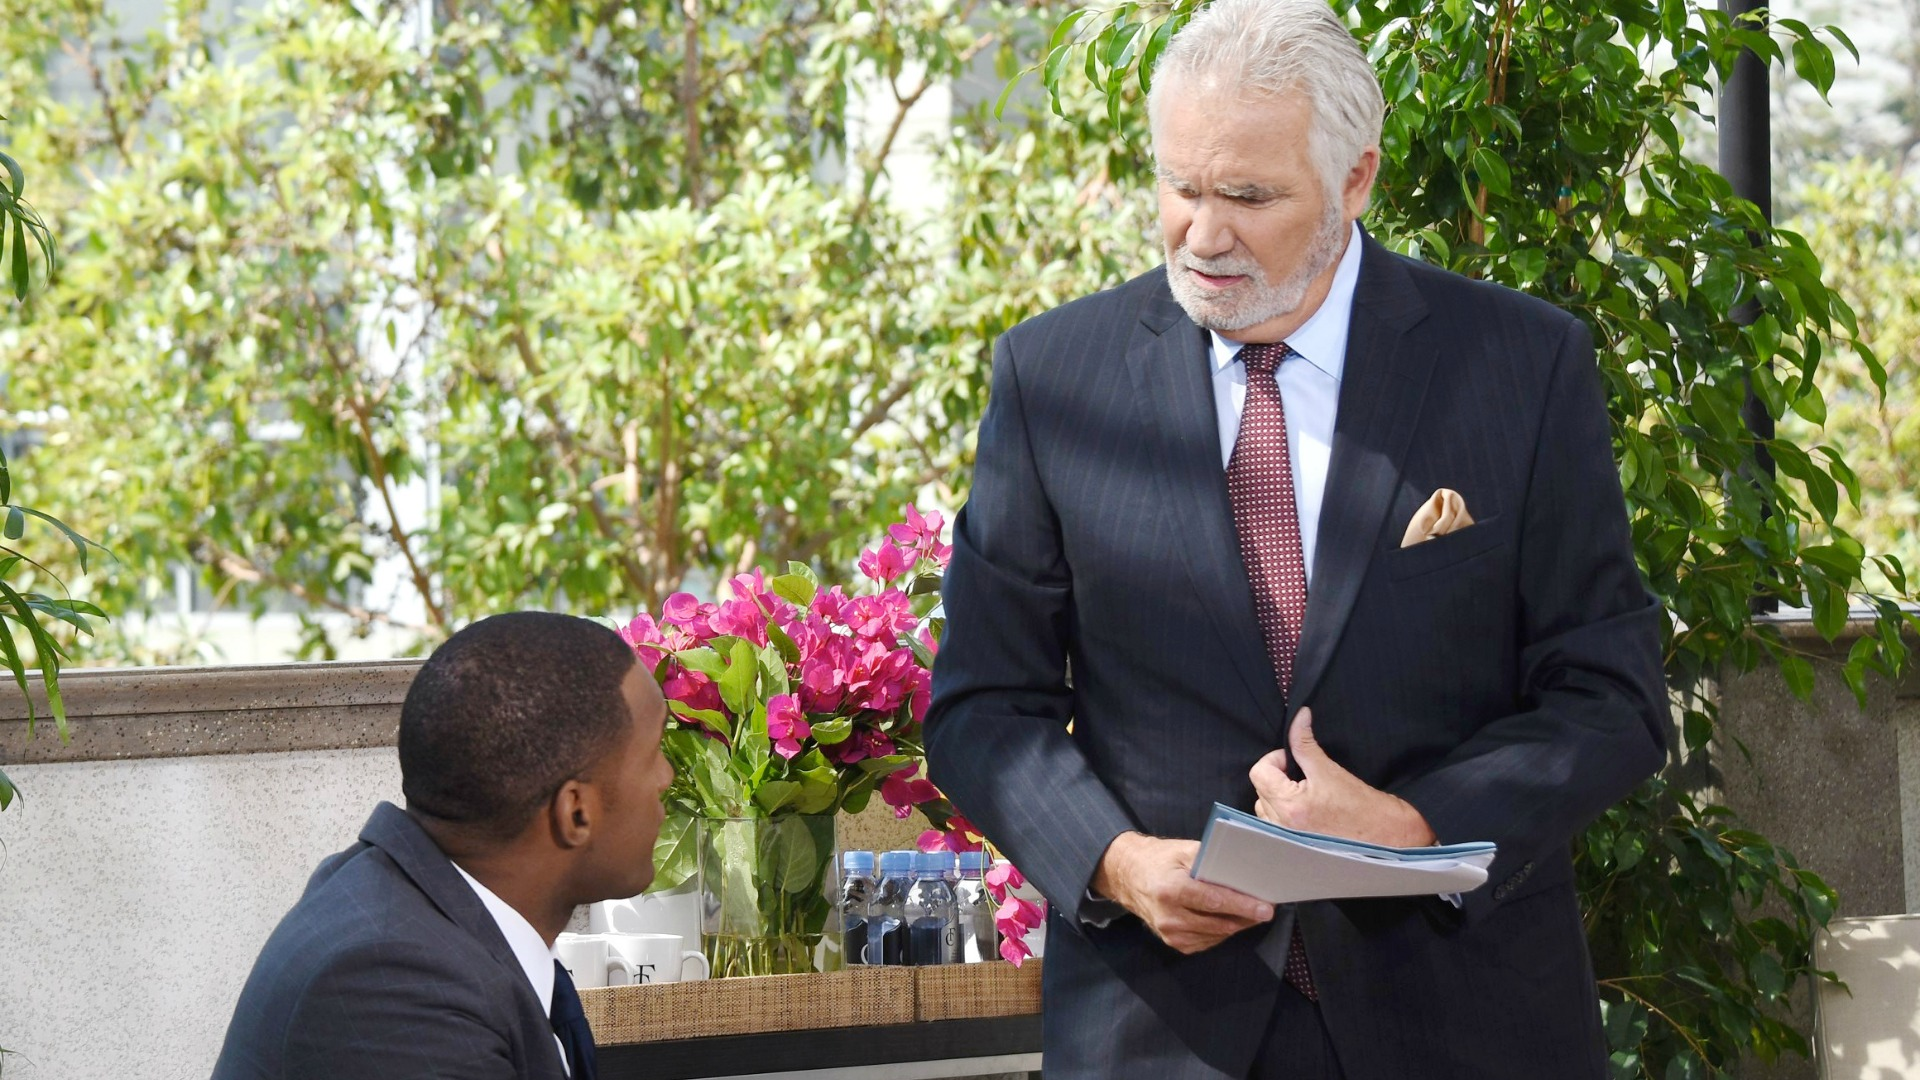 Eric faces a major dilemma when Carter arrives with a delivery from Ridge.